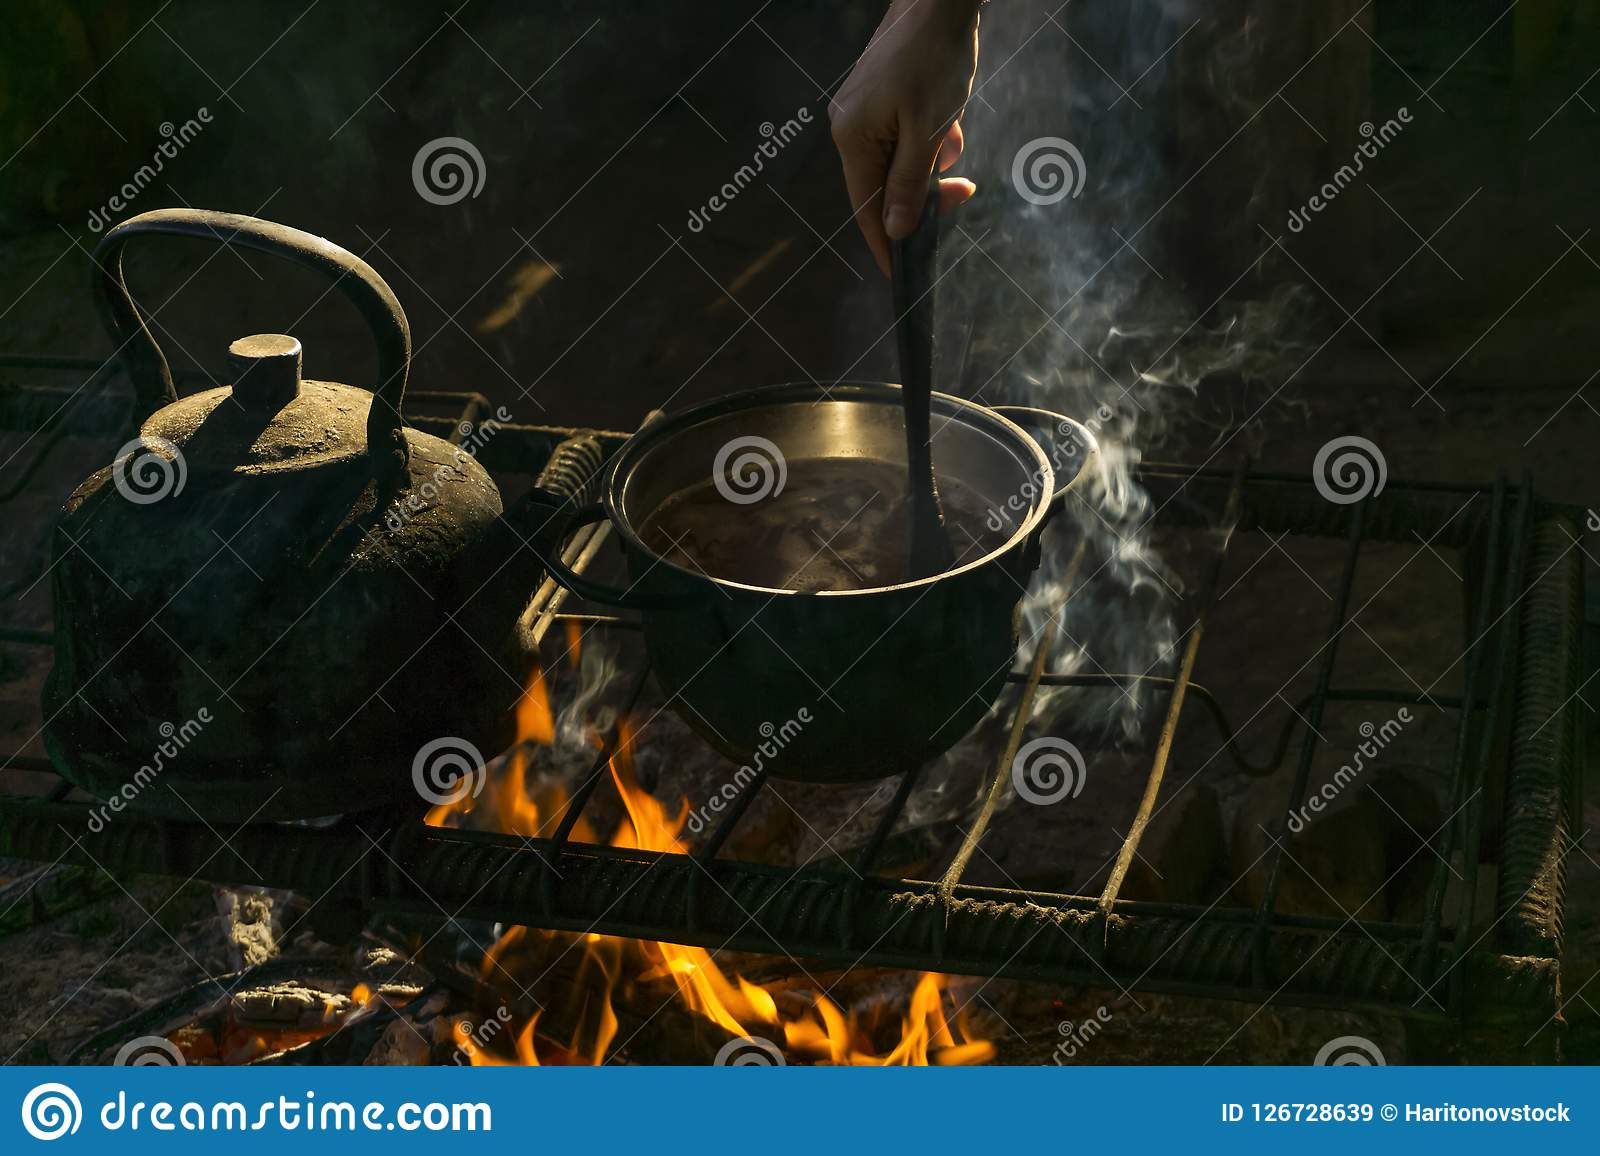 Pot and kettle on a portable hearth made of metal rods in a nomad`s dwelling. Pot and kettle stand over a fire on a portable hearth made of metal rods in a nomad Royalty Free Stock Images